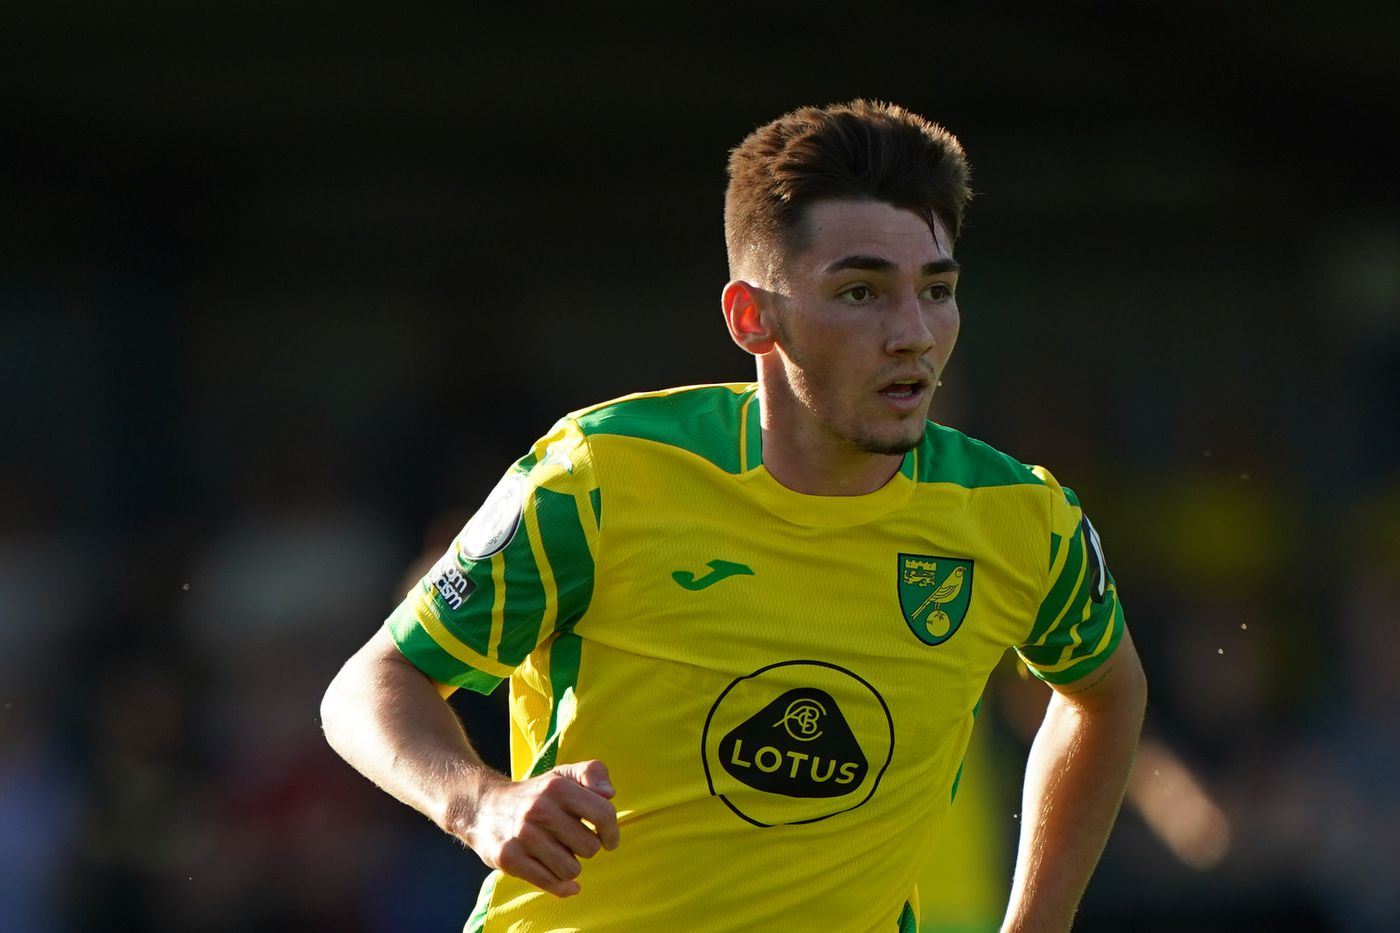 Farke urging caution after Gilmour impresses in preseason debut for Norwich  City - We Ain't Got No History